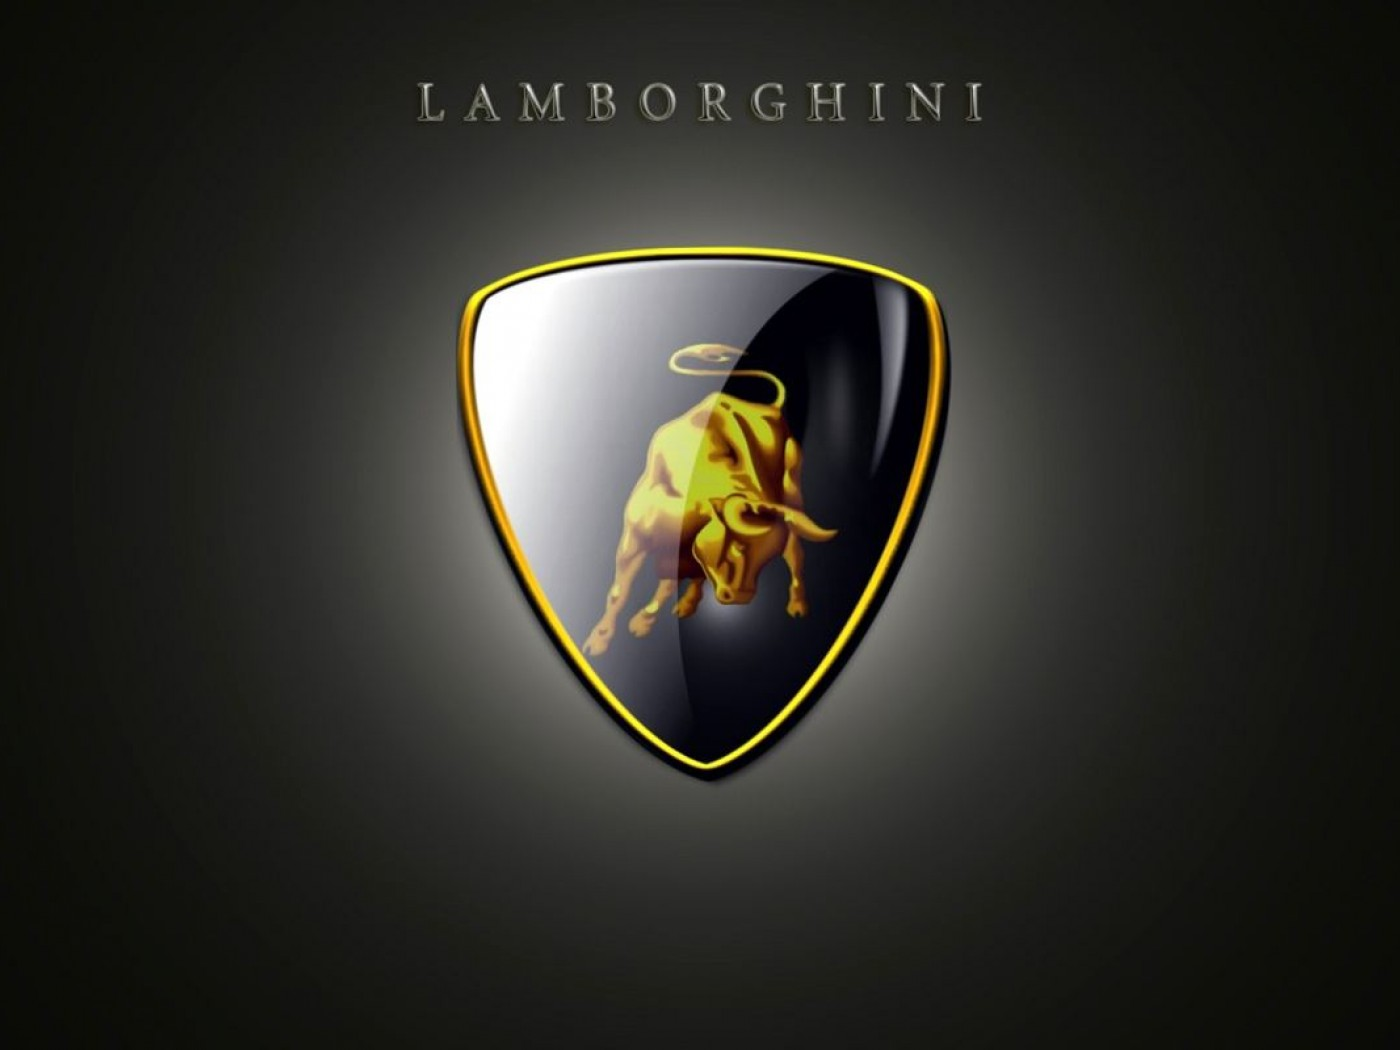 Lamborghini Logo 3D and Hd Wallpaper for Desktop and Mobiles